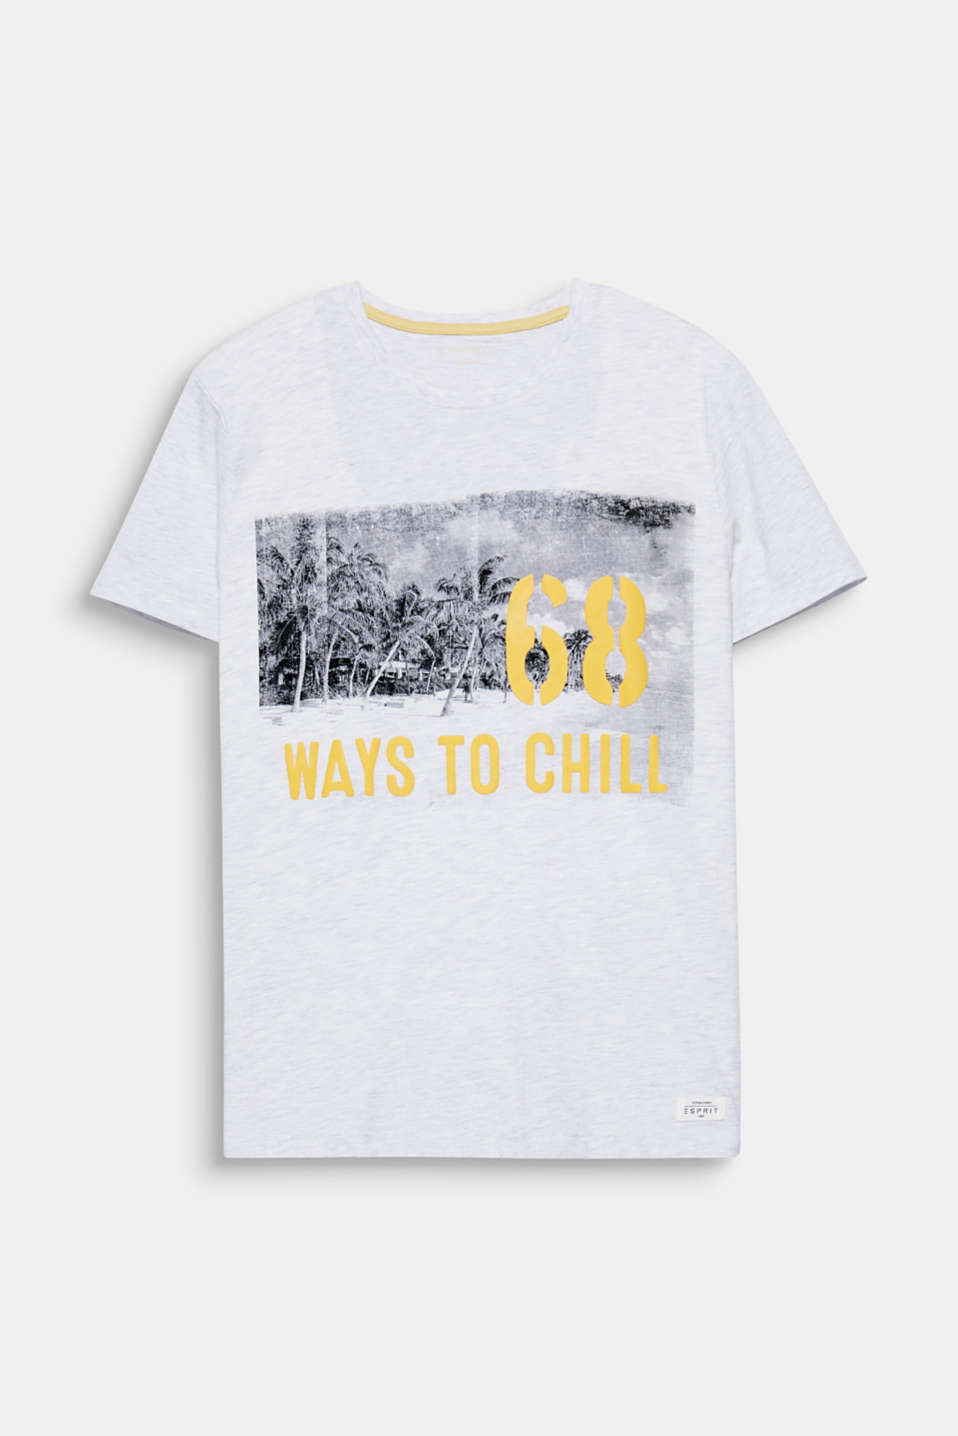 68 Ways to Chill - one print, one statement on this melange t-shirt.